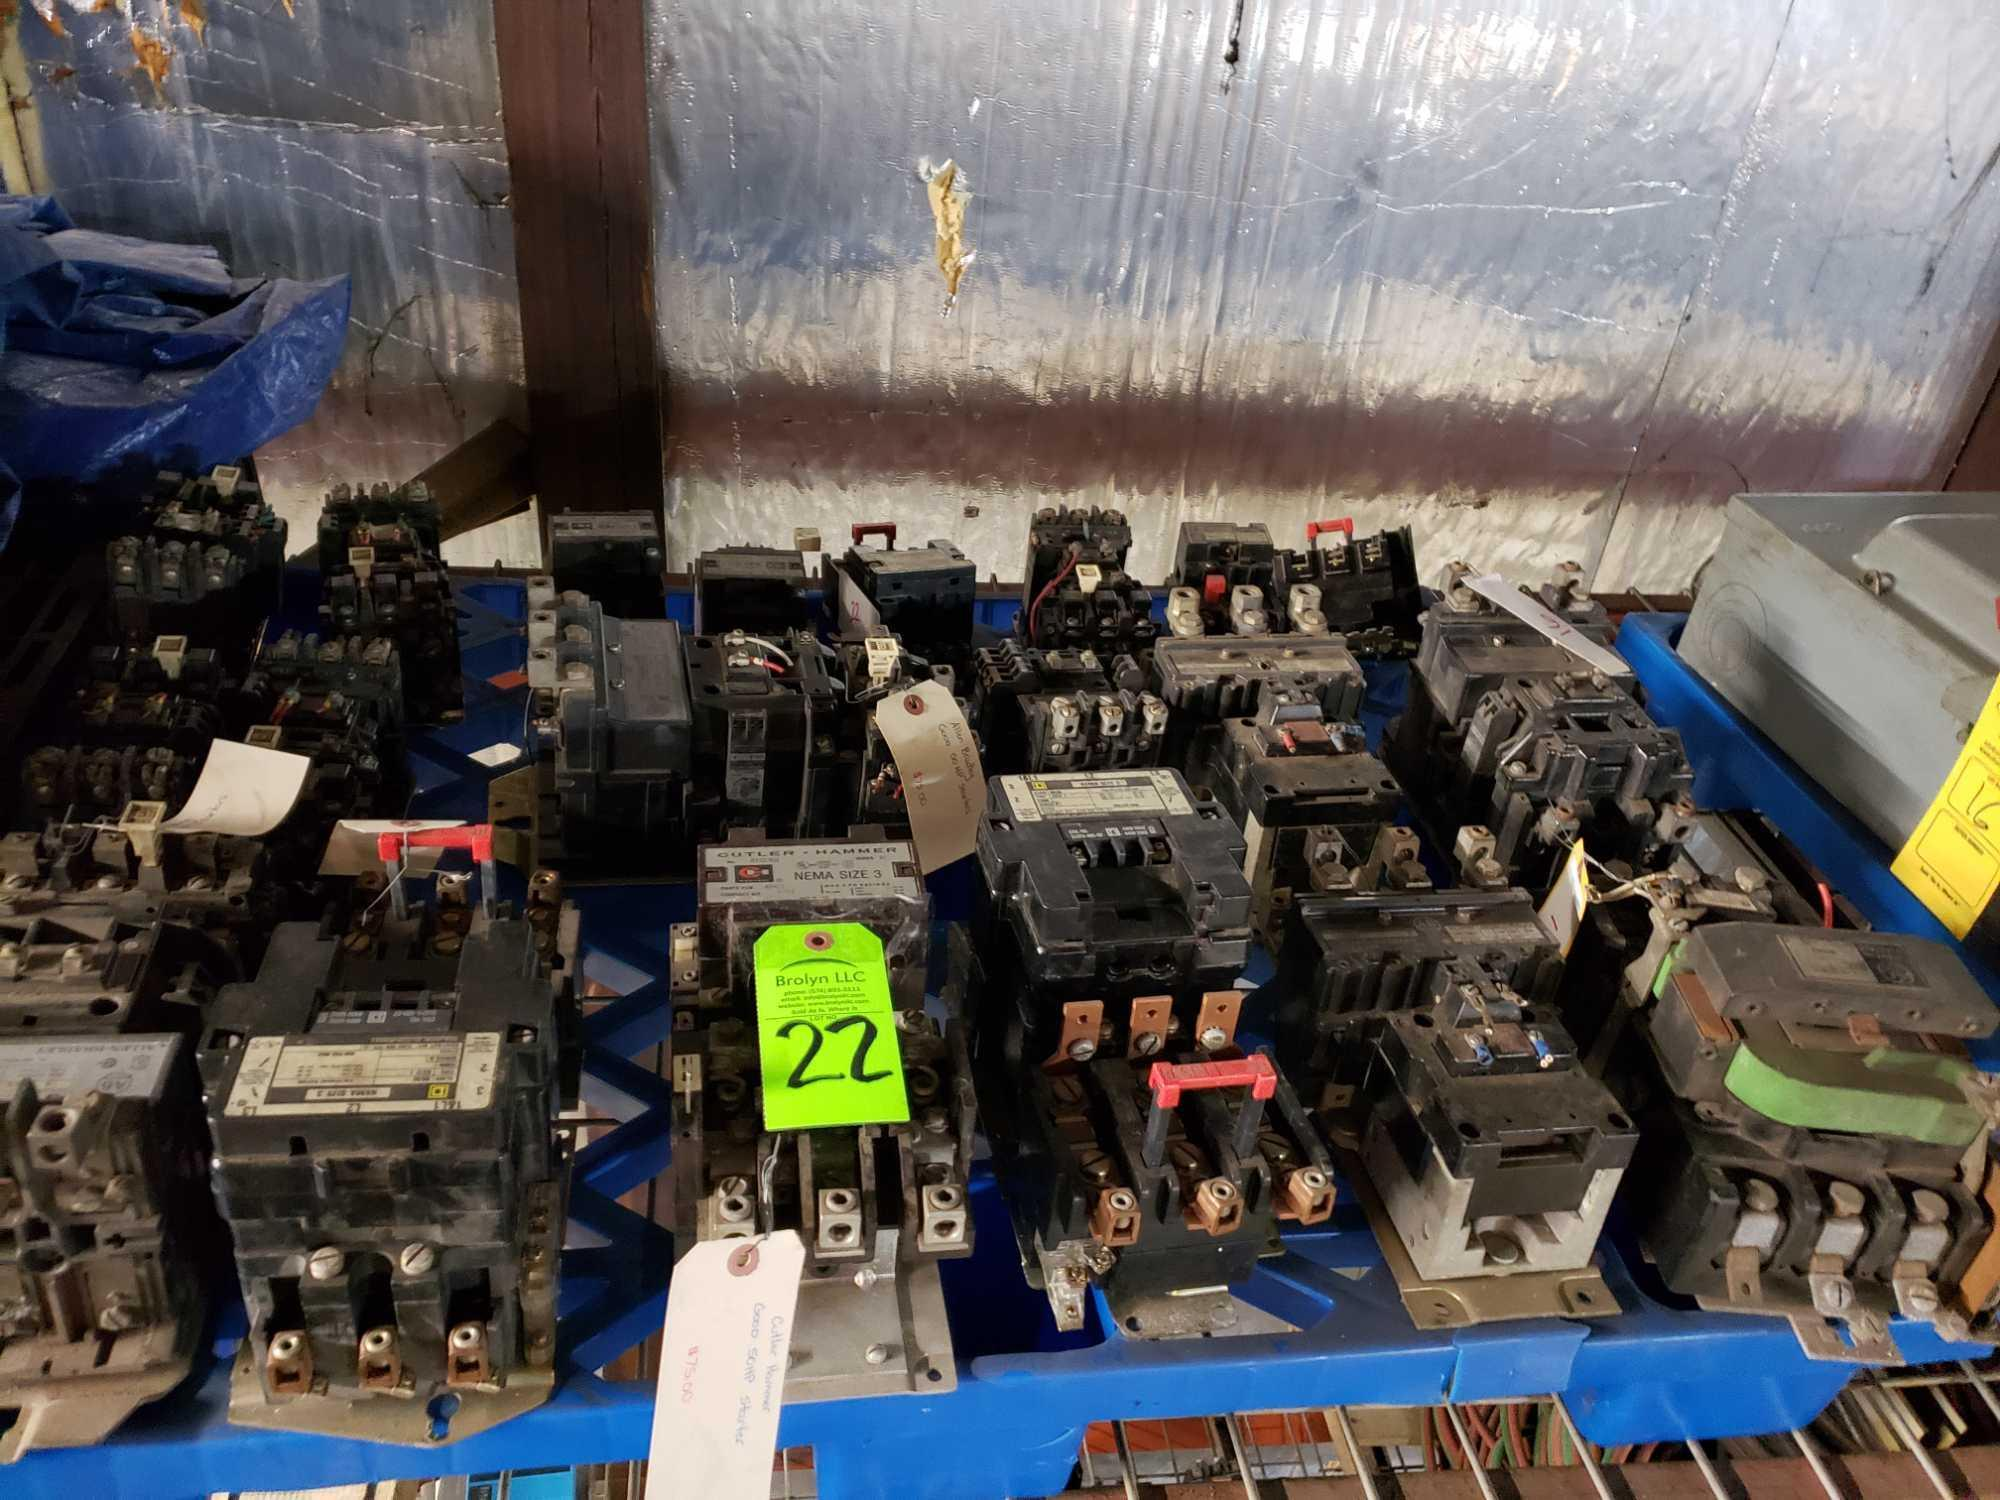 Lot 22 - Large lot of assorted Contactors up to size 3 from Square D, Cutler Hammer and Allen Bradley